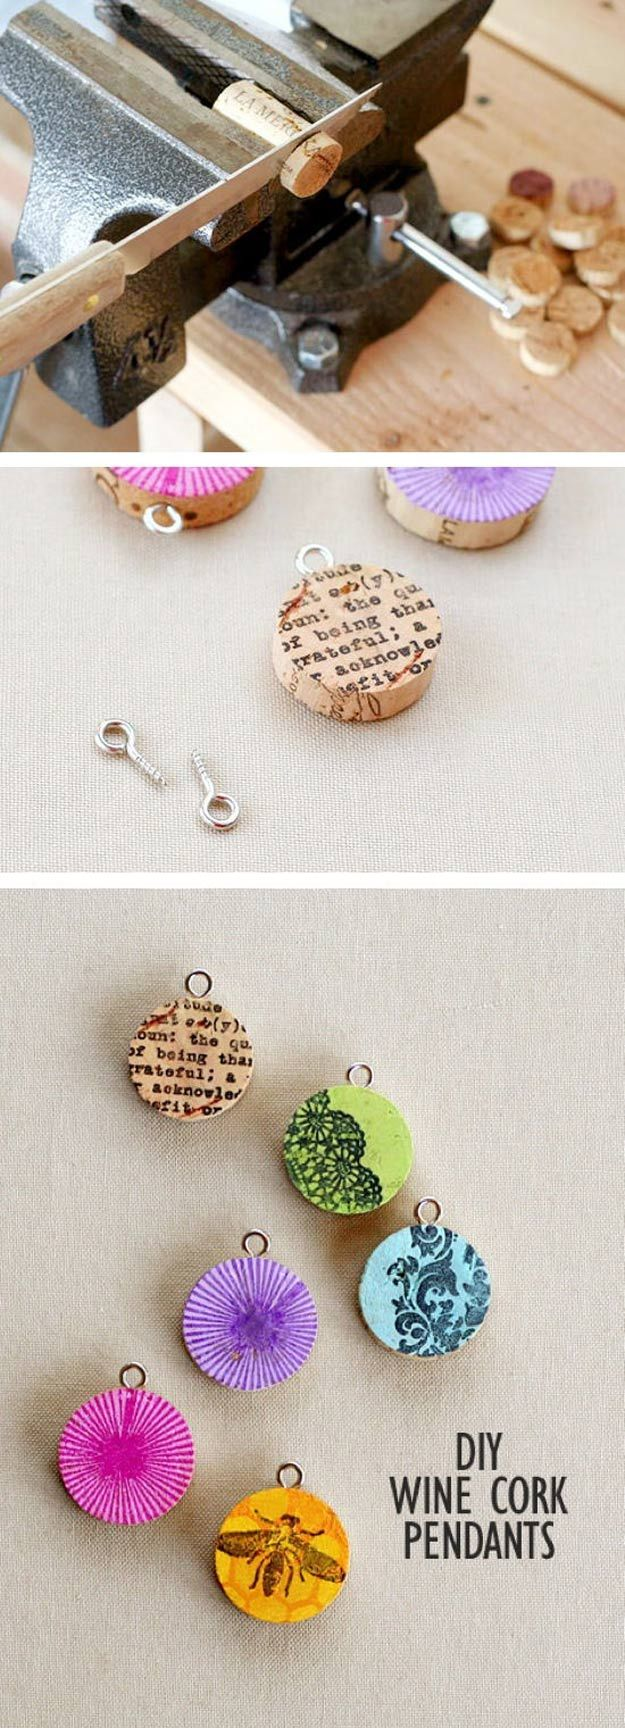 Used wine corks for crafts - Cool Diy Ideas For Fun And Easy Crafts Diy Wine Cork Crafts Colorful Handmade